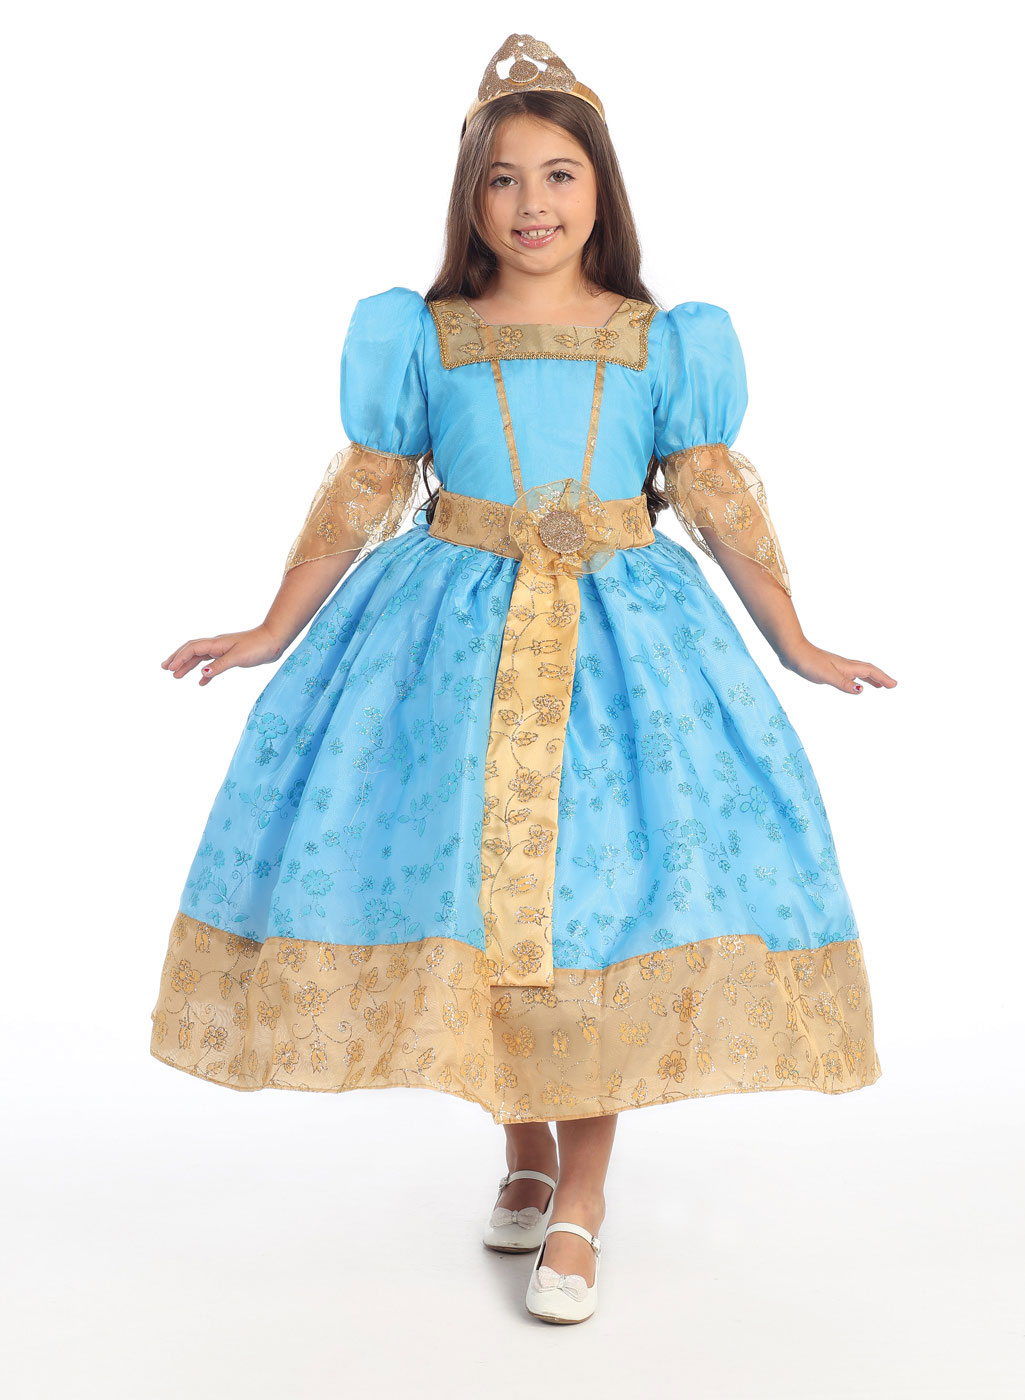 BK_029 - Girls Dress Up Costume Style 029- Light Blue and Gold ...